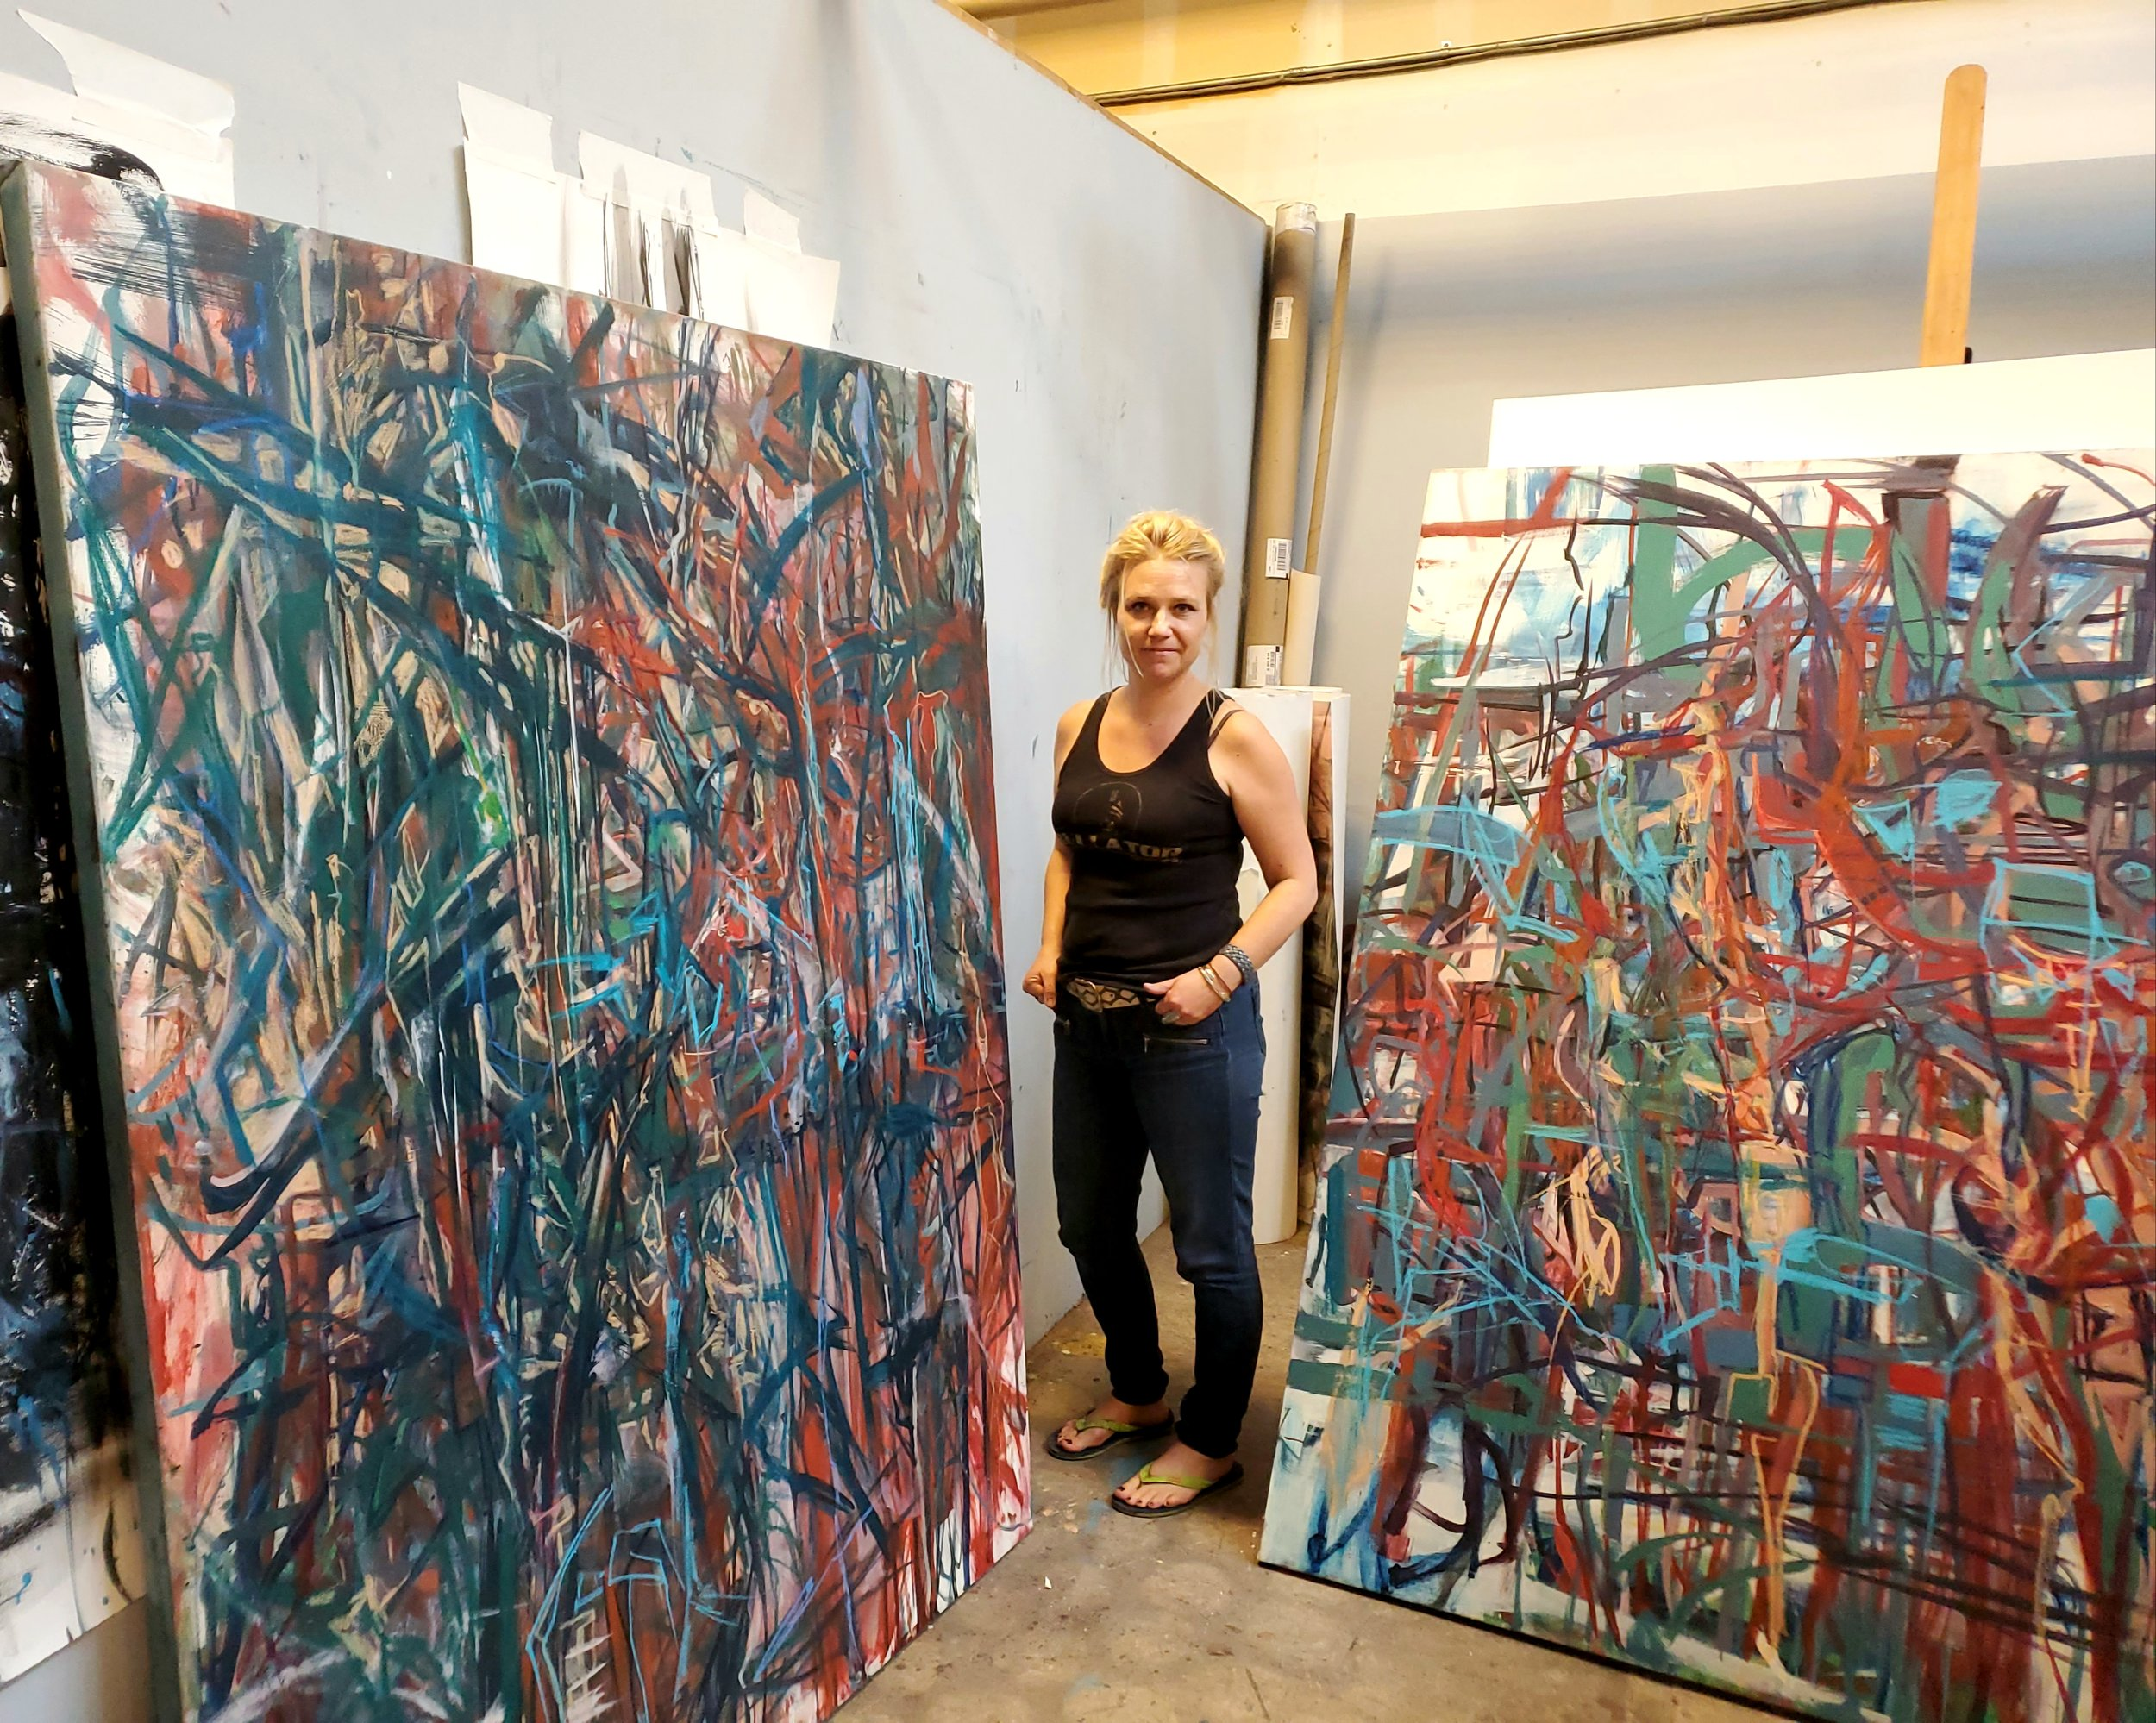 Rebecca Maclachlan is one of the local artists with a studio at Water Street Studios